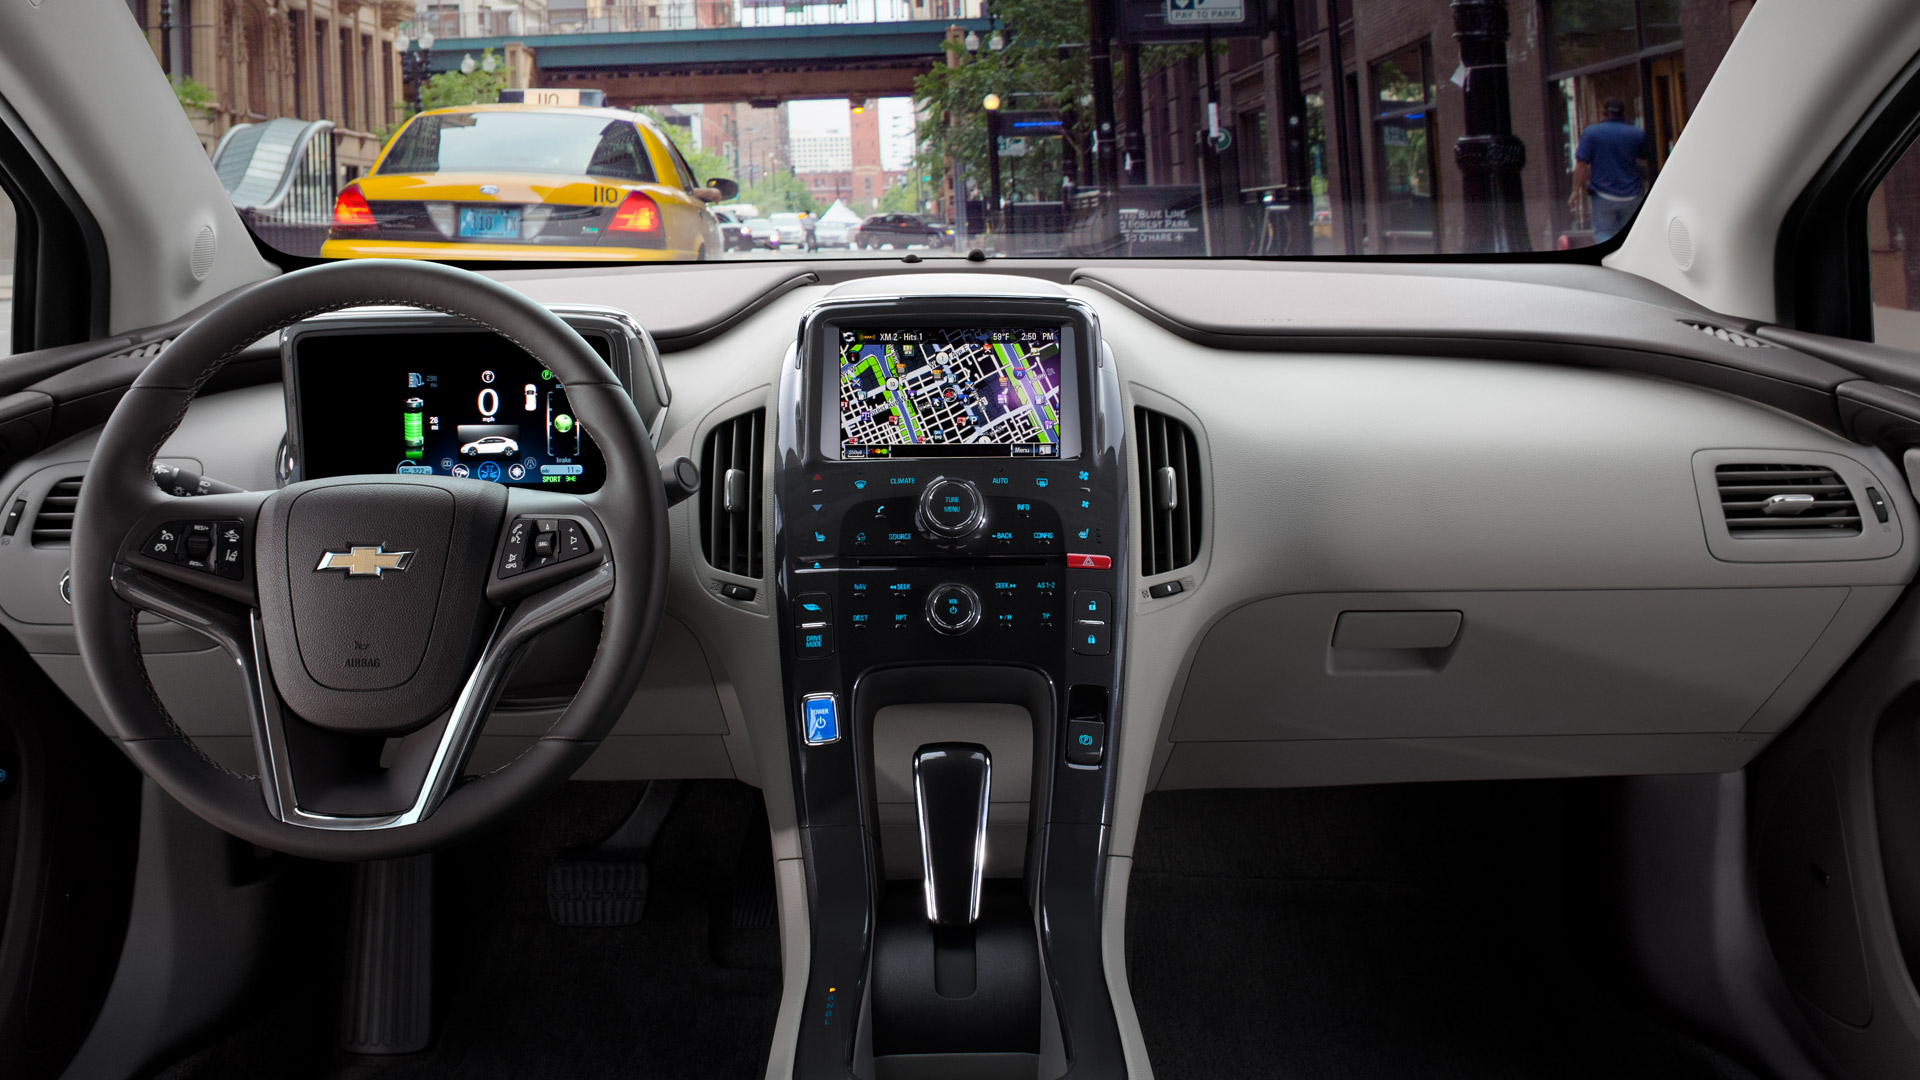 download Volt Car Interior-1920x1080 Wallpapers